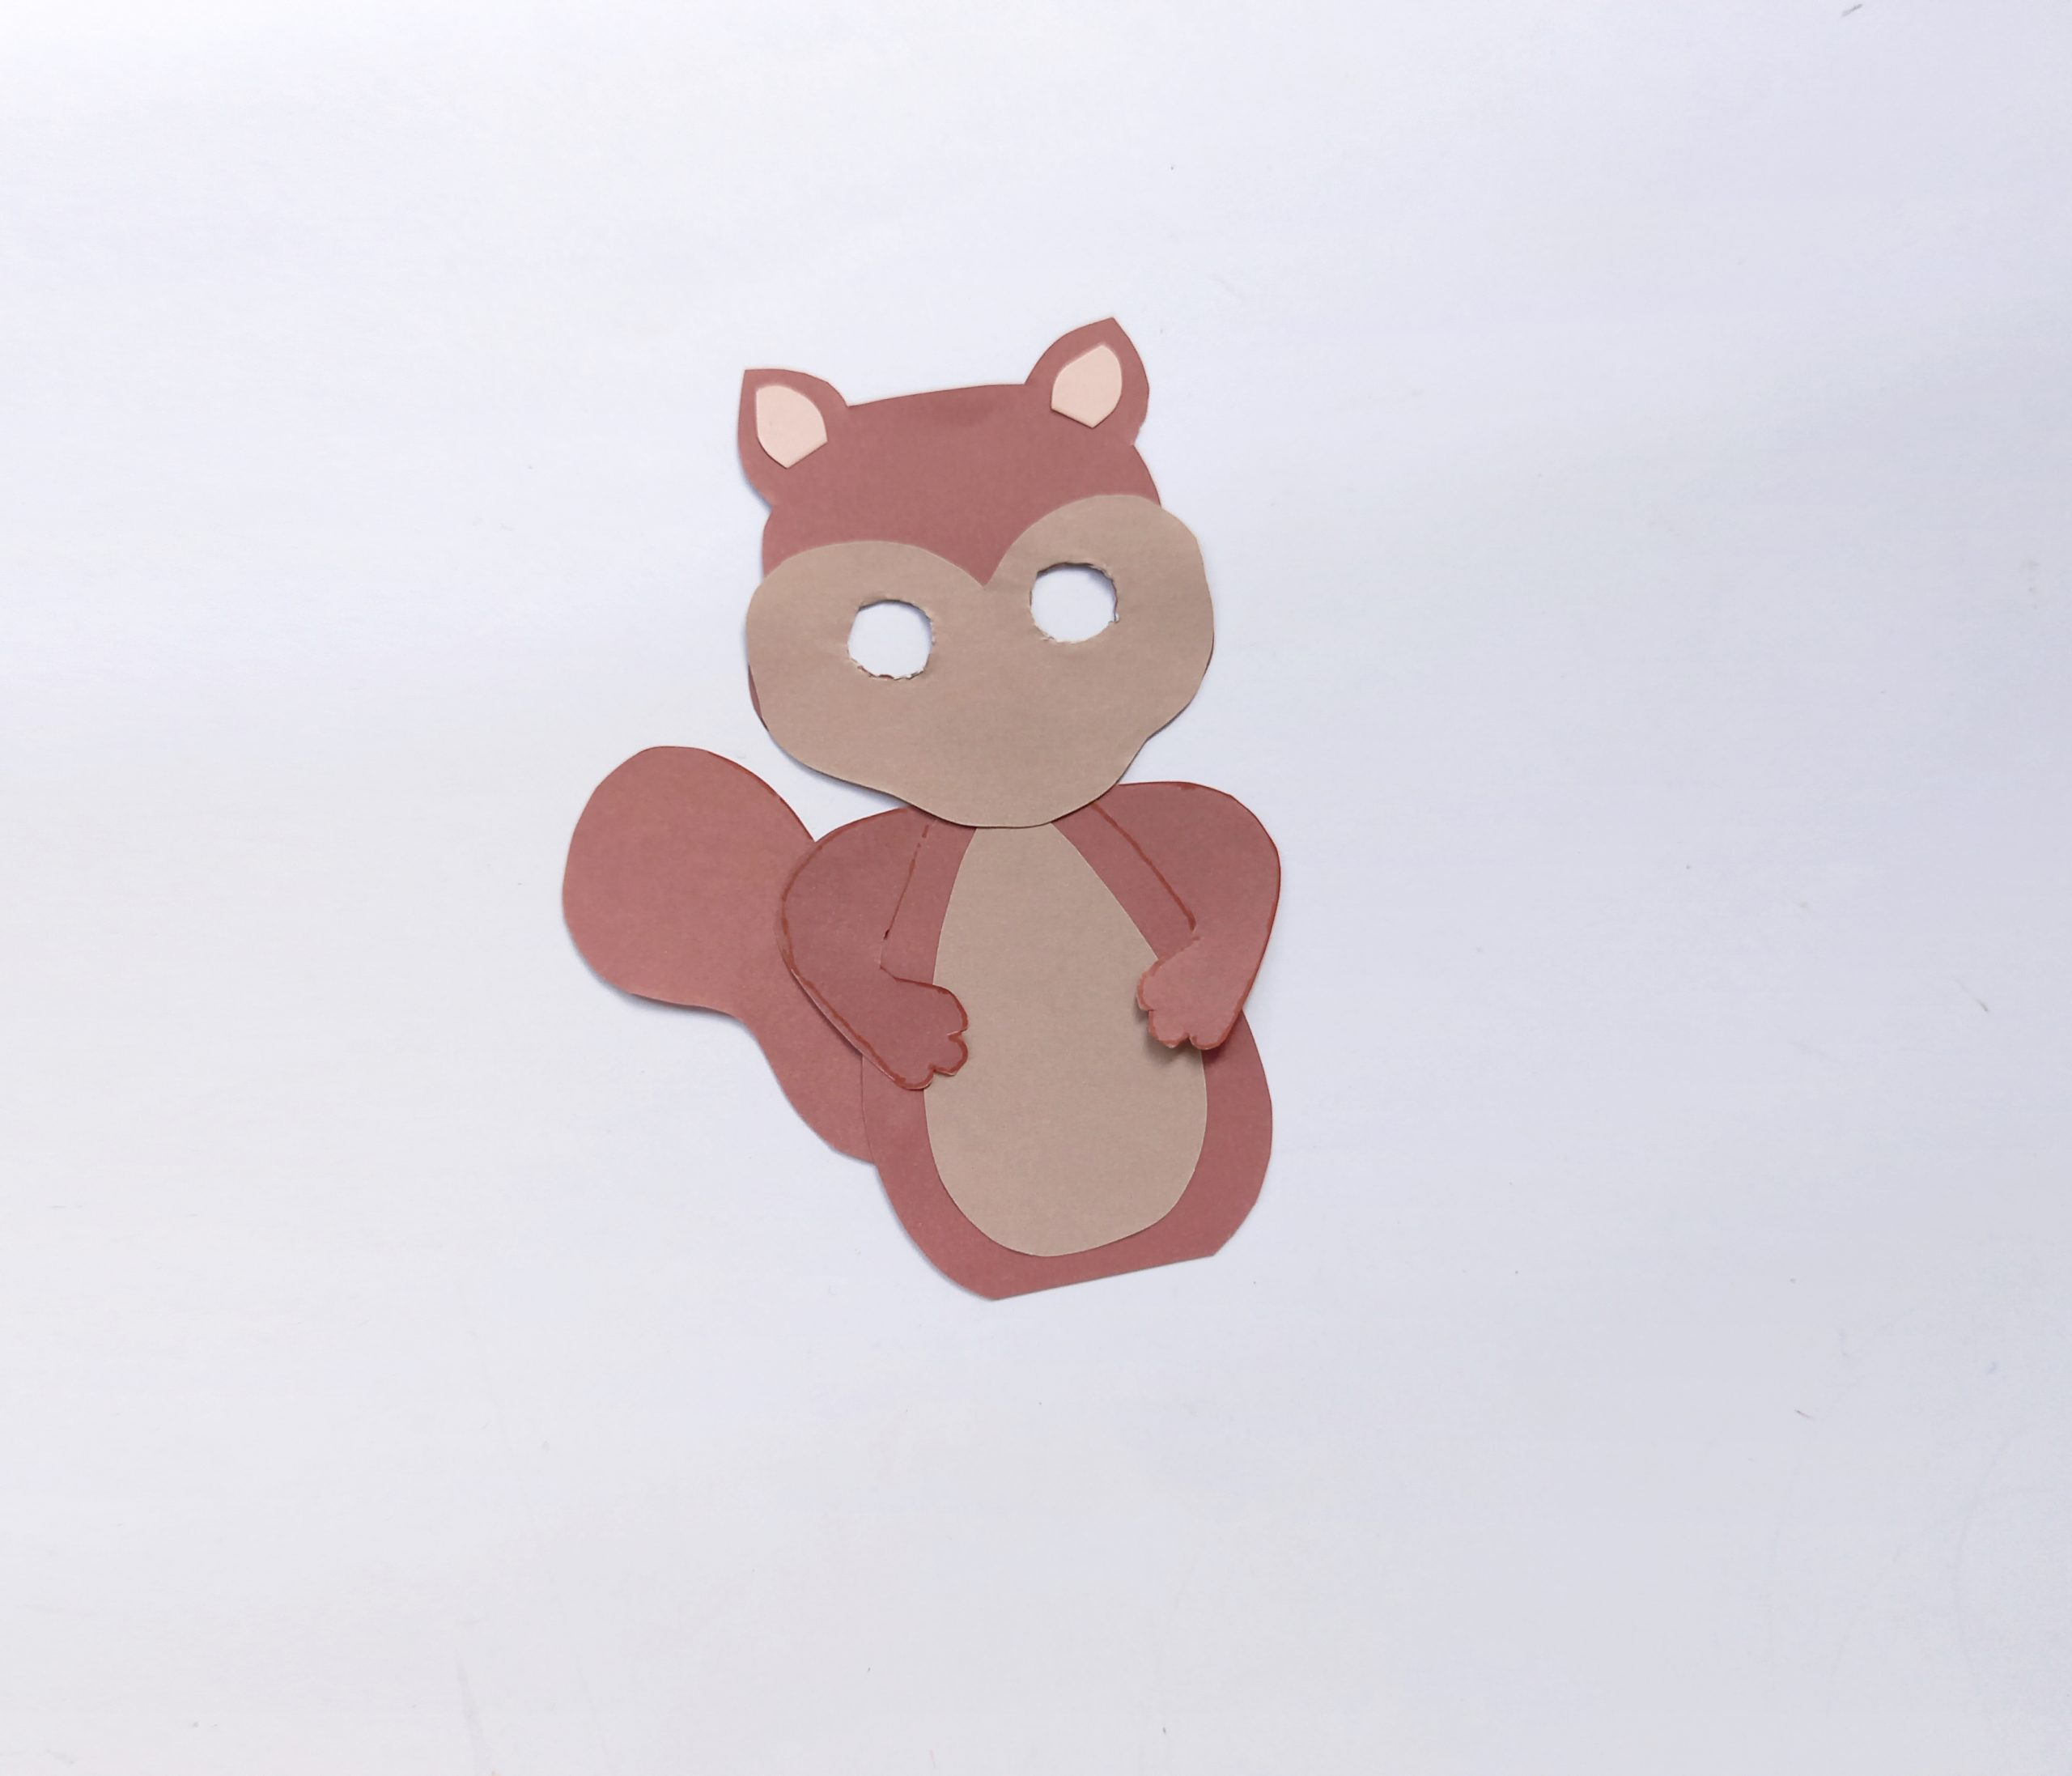 how to make a paper squirrel with moving eyes